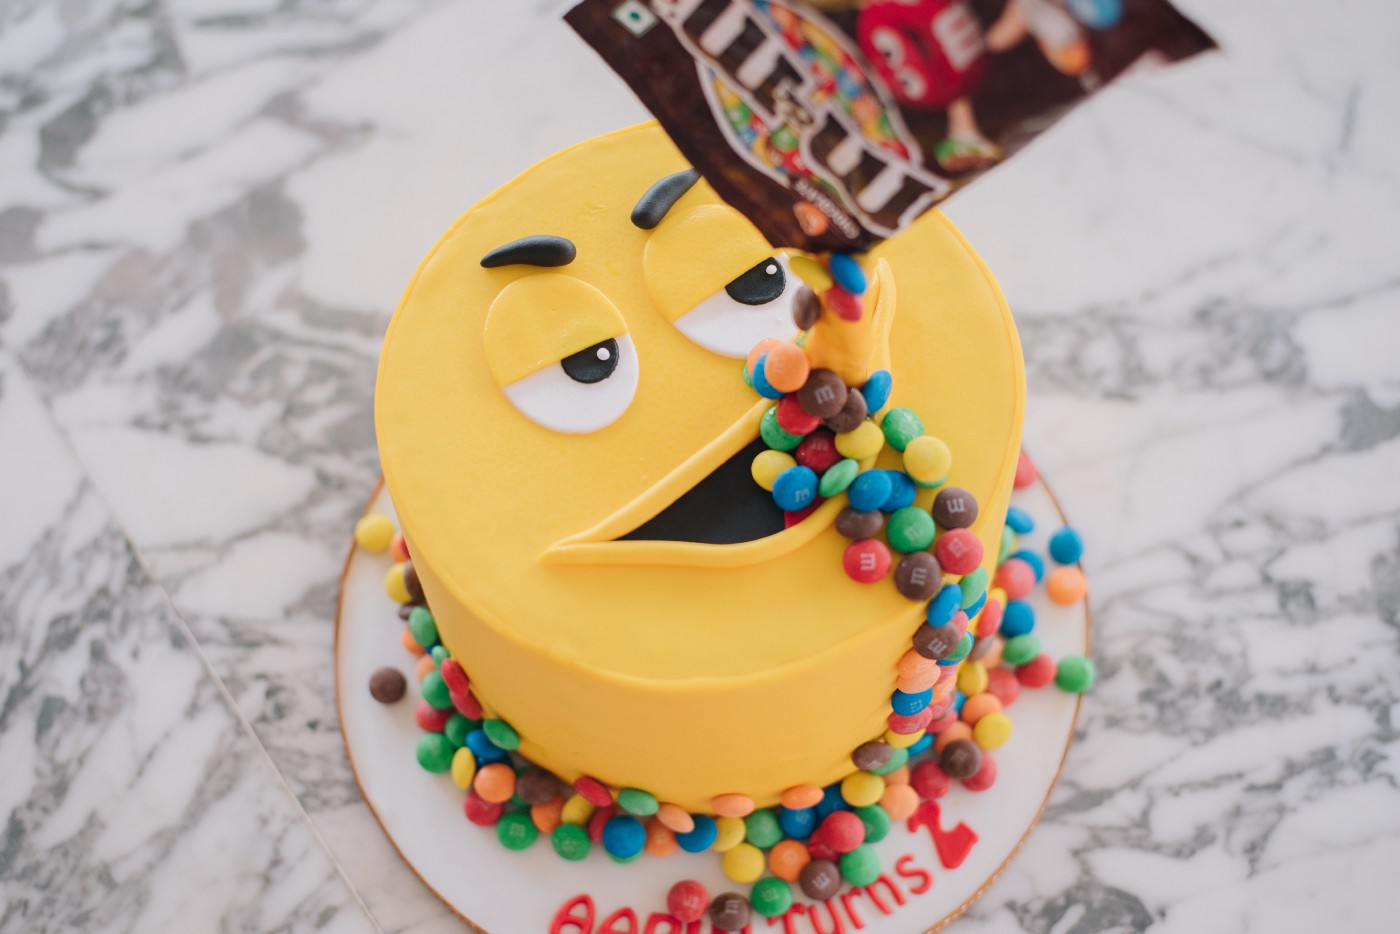 A yellow cake has a face. Its mouth wide open. M&Ms are poured in its mouth, the perfect Libertarian dilemma.